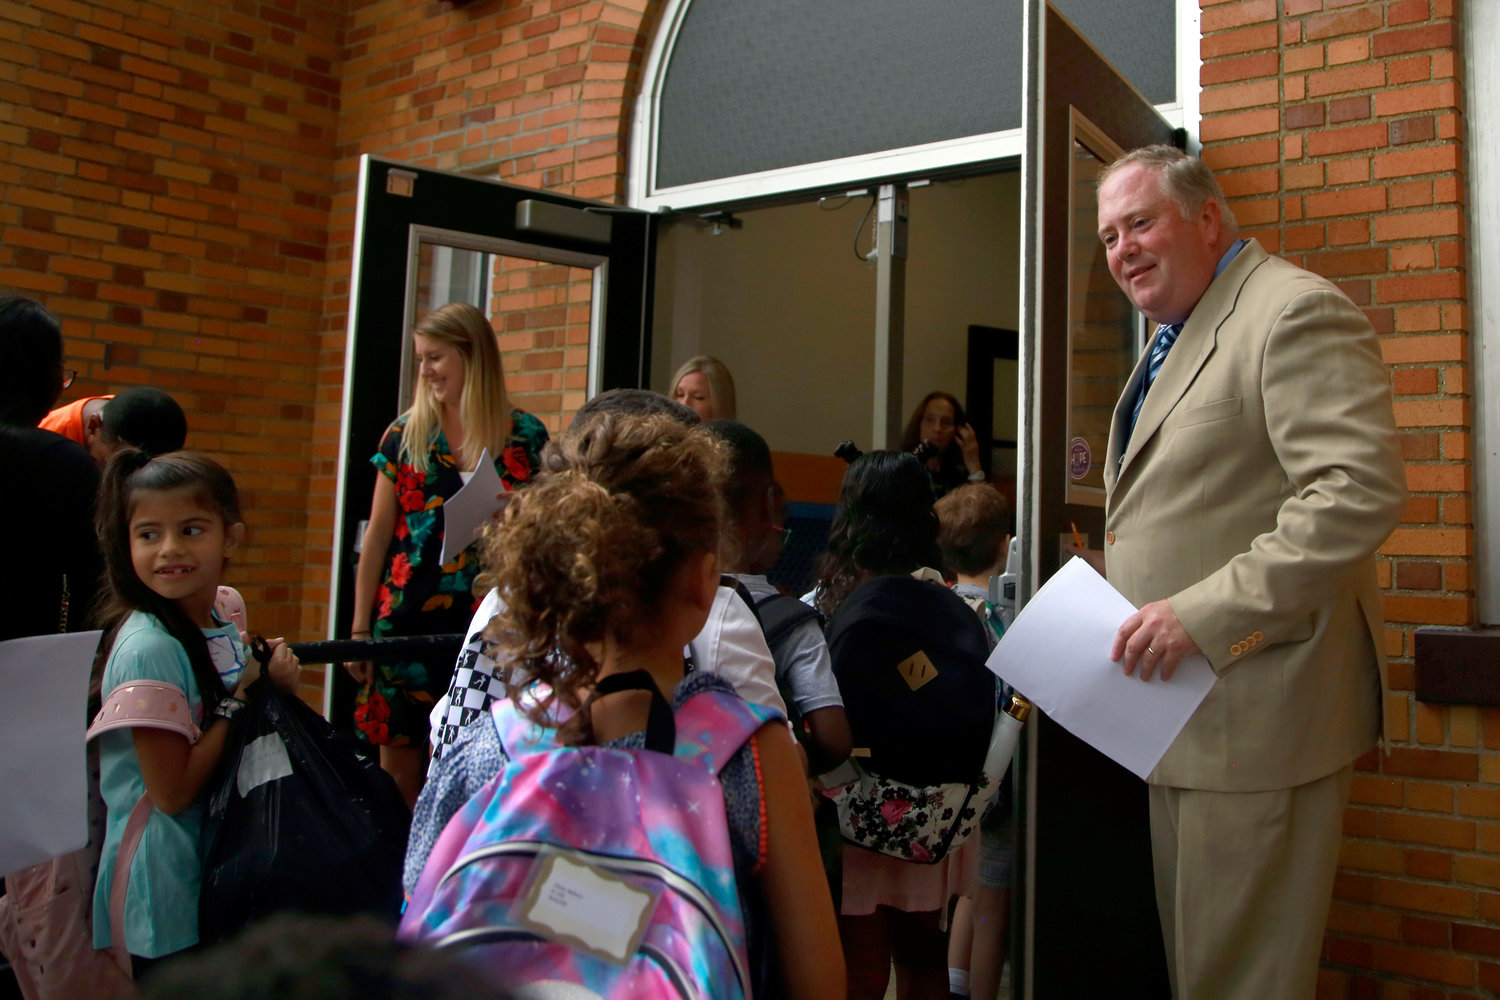 Maurice W. Downing Principal Ed Tallon greets the students on their first day of school.